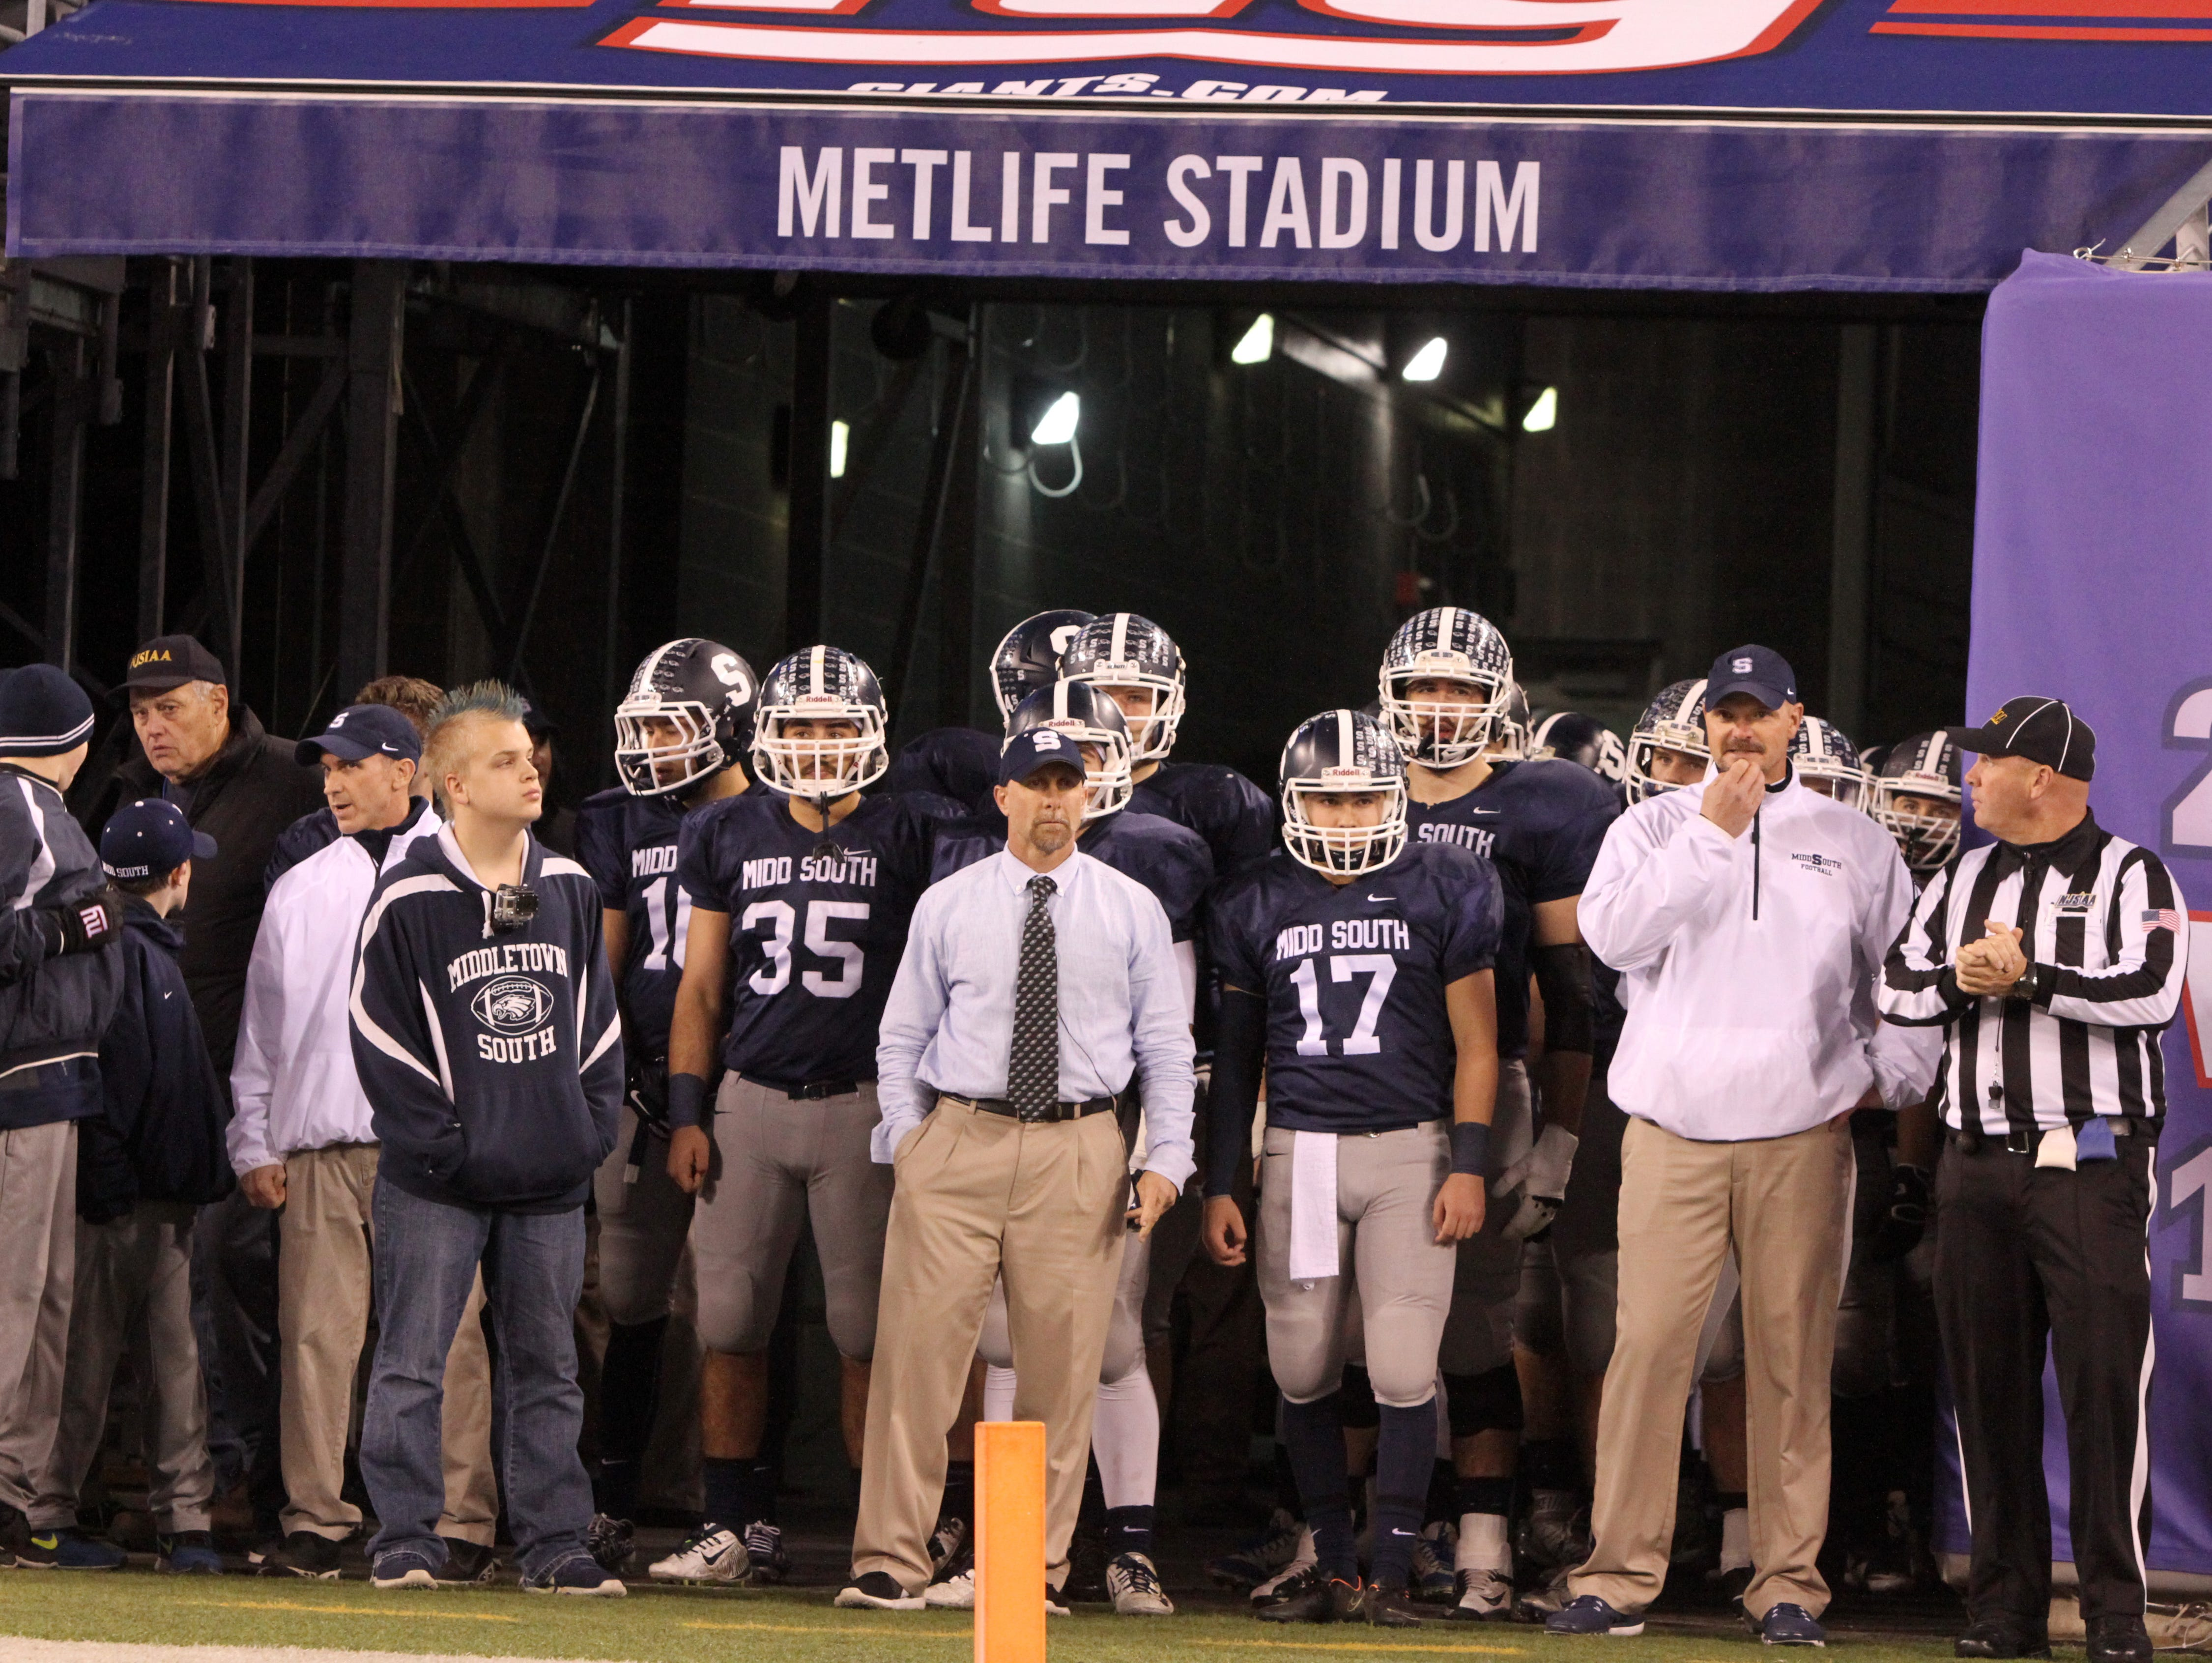 Middletown South High School football prepares to take the field to play against Phillipsburg High School during the North 2 Group IV game of the 2015 NJSIAA/MetLife Stadium High School Football Championships at MetLife Stadium in East Rutherford, NJ Saturday December 5, 2015.